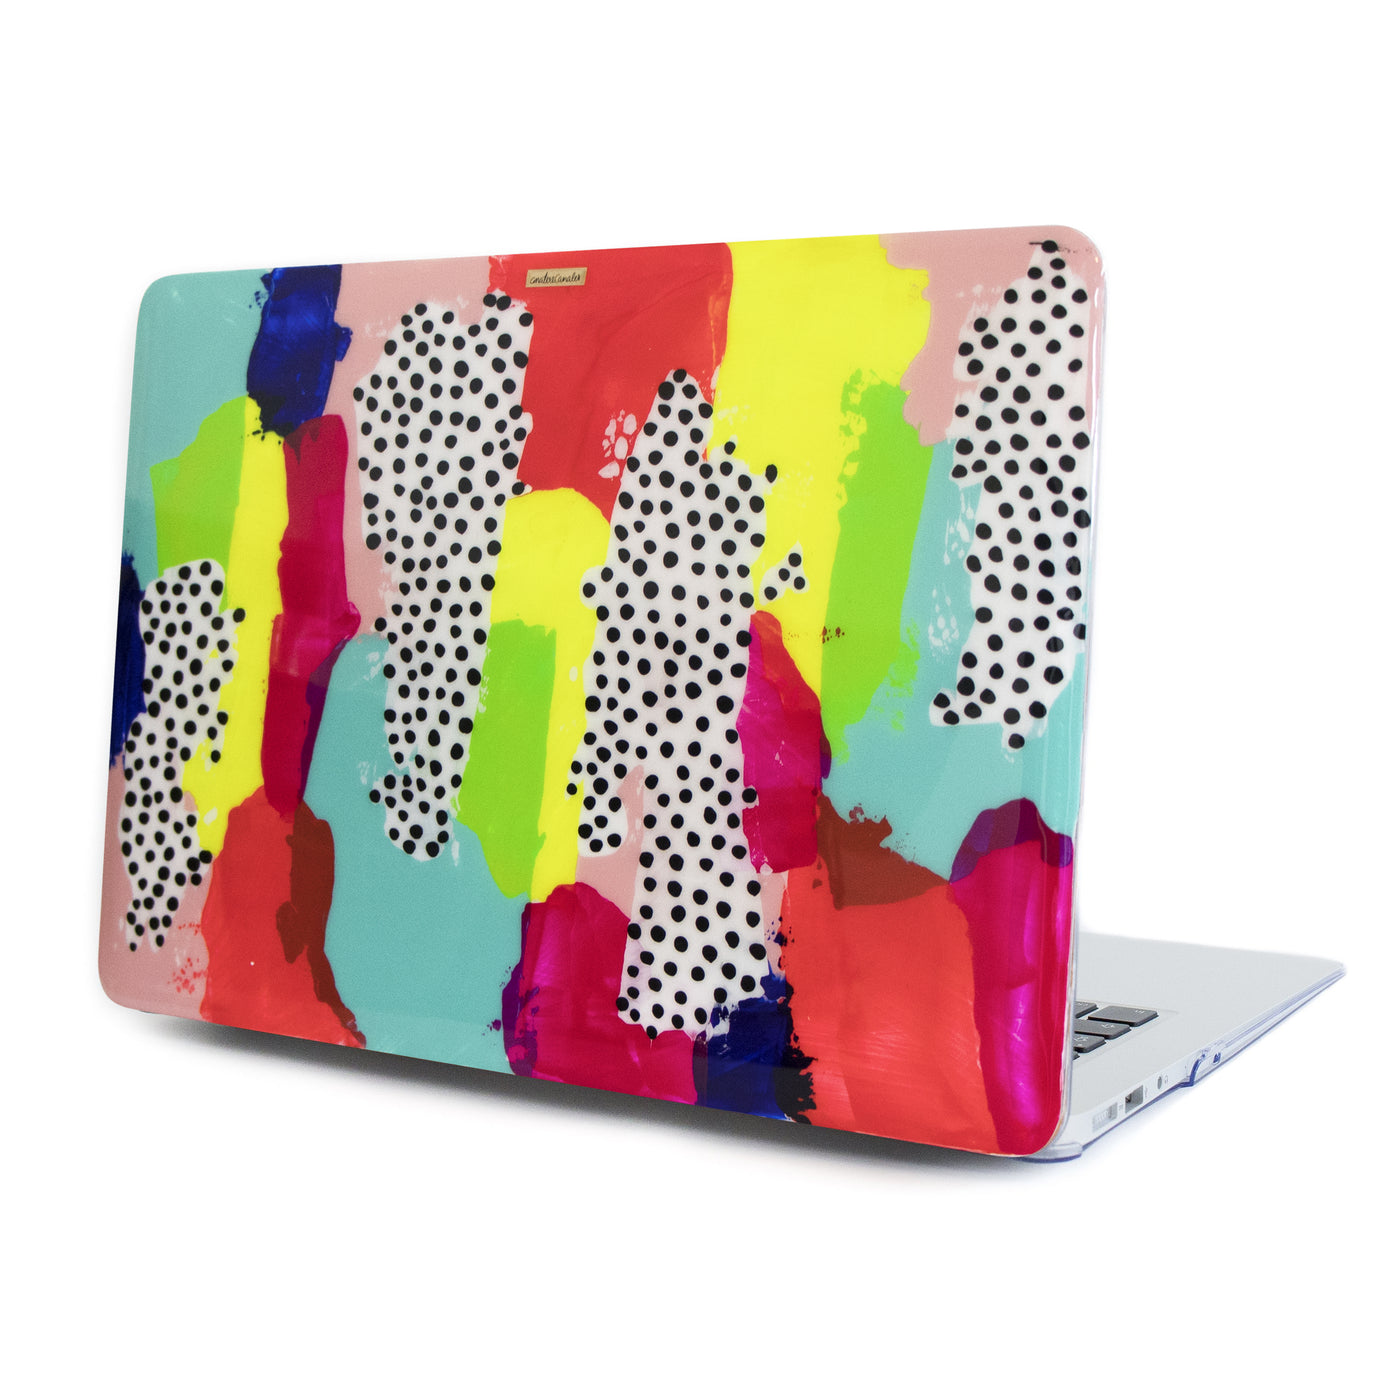 Brainstorm Macbook Case - Ana Tere Canales